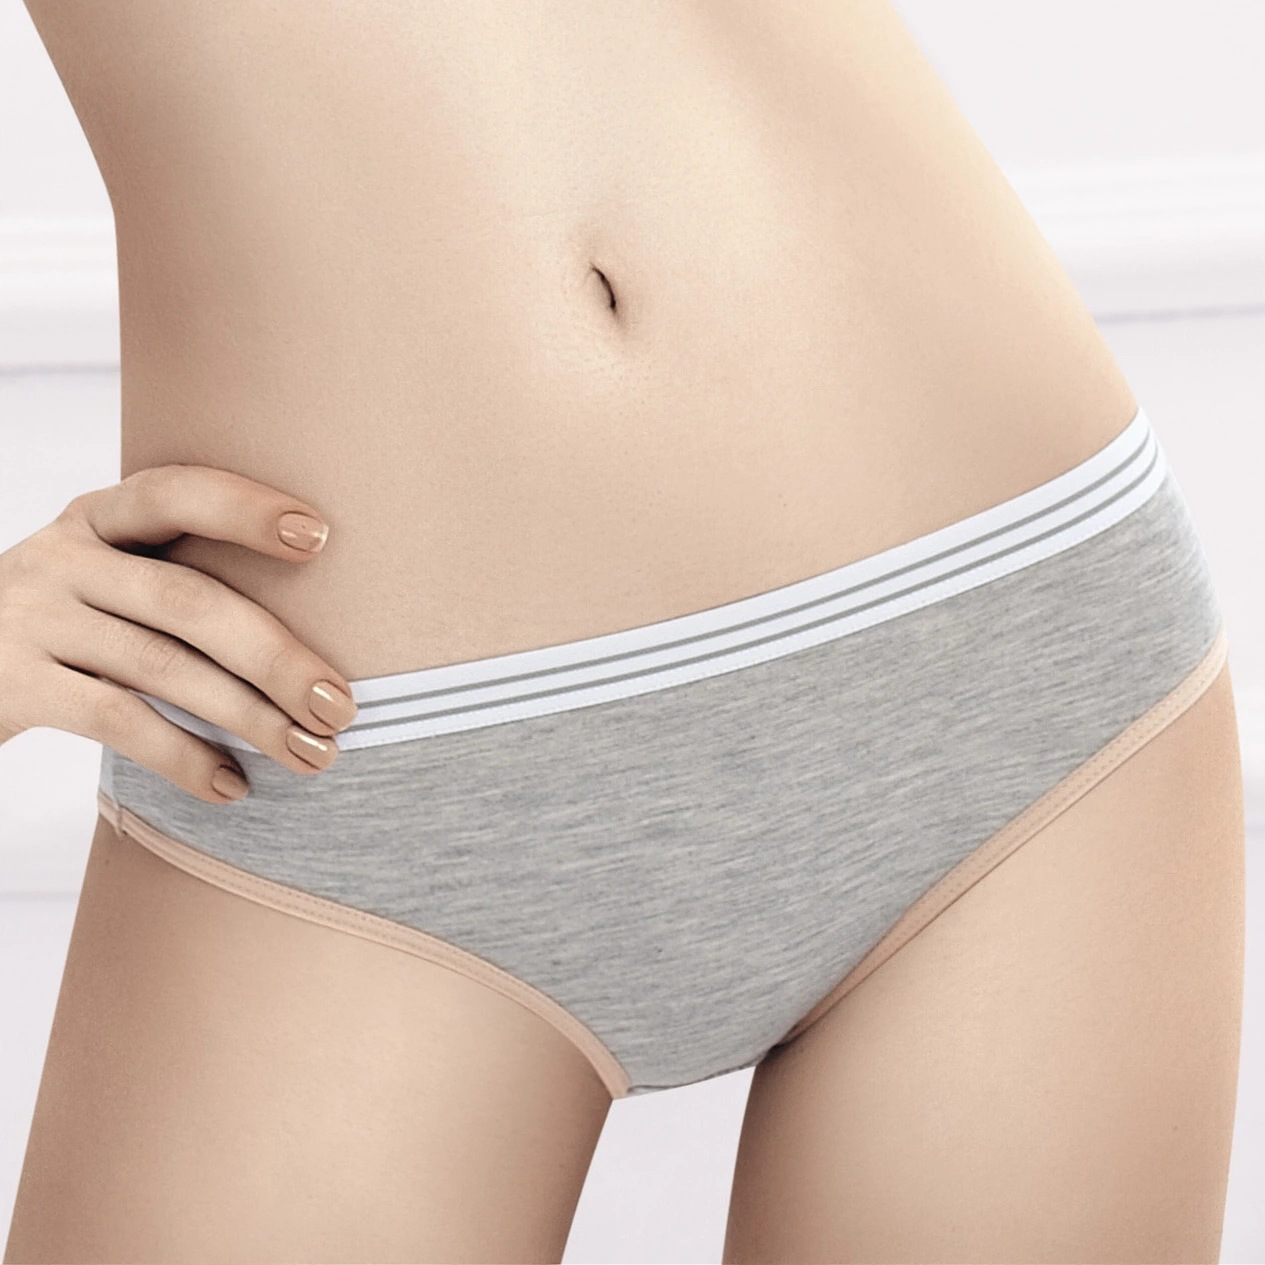 3pieces/$14.55 Women Cotton Underwear Girl Sweet Comfortable Soft Carry Buttock Shapes Breathable Underwear